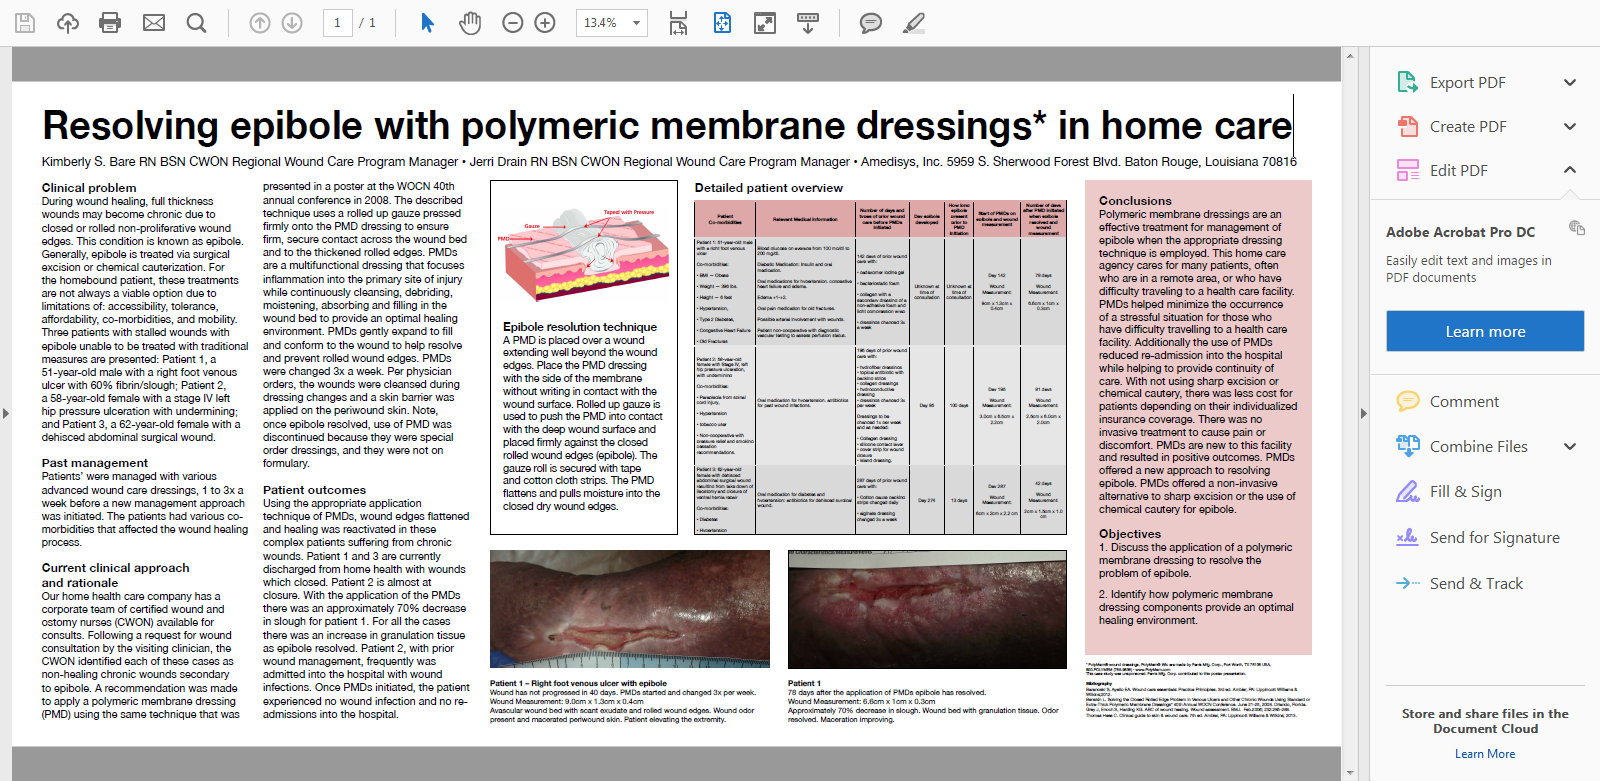 Resolving Epibole with Polymeric Membrane Dressings* in Home